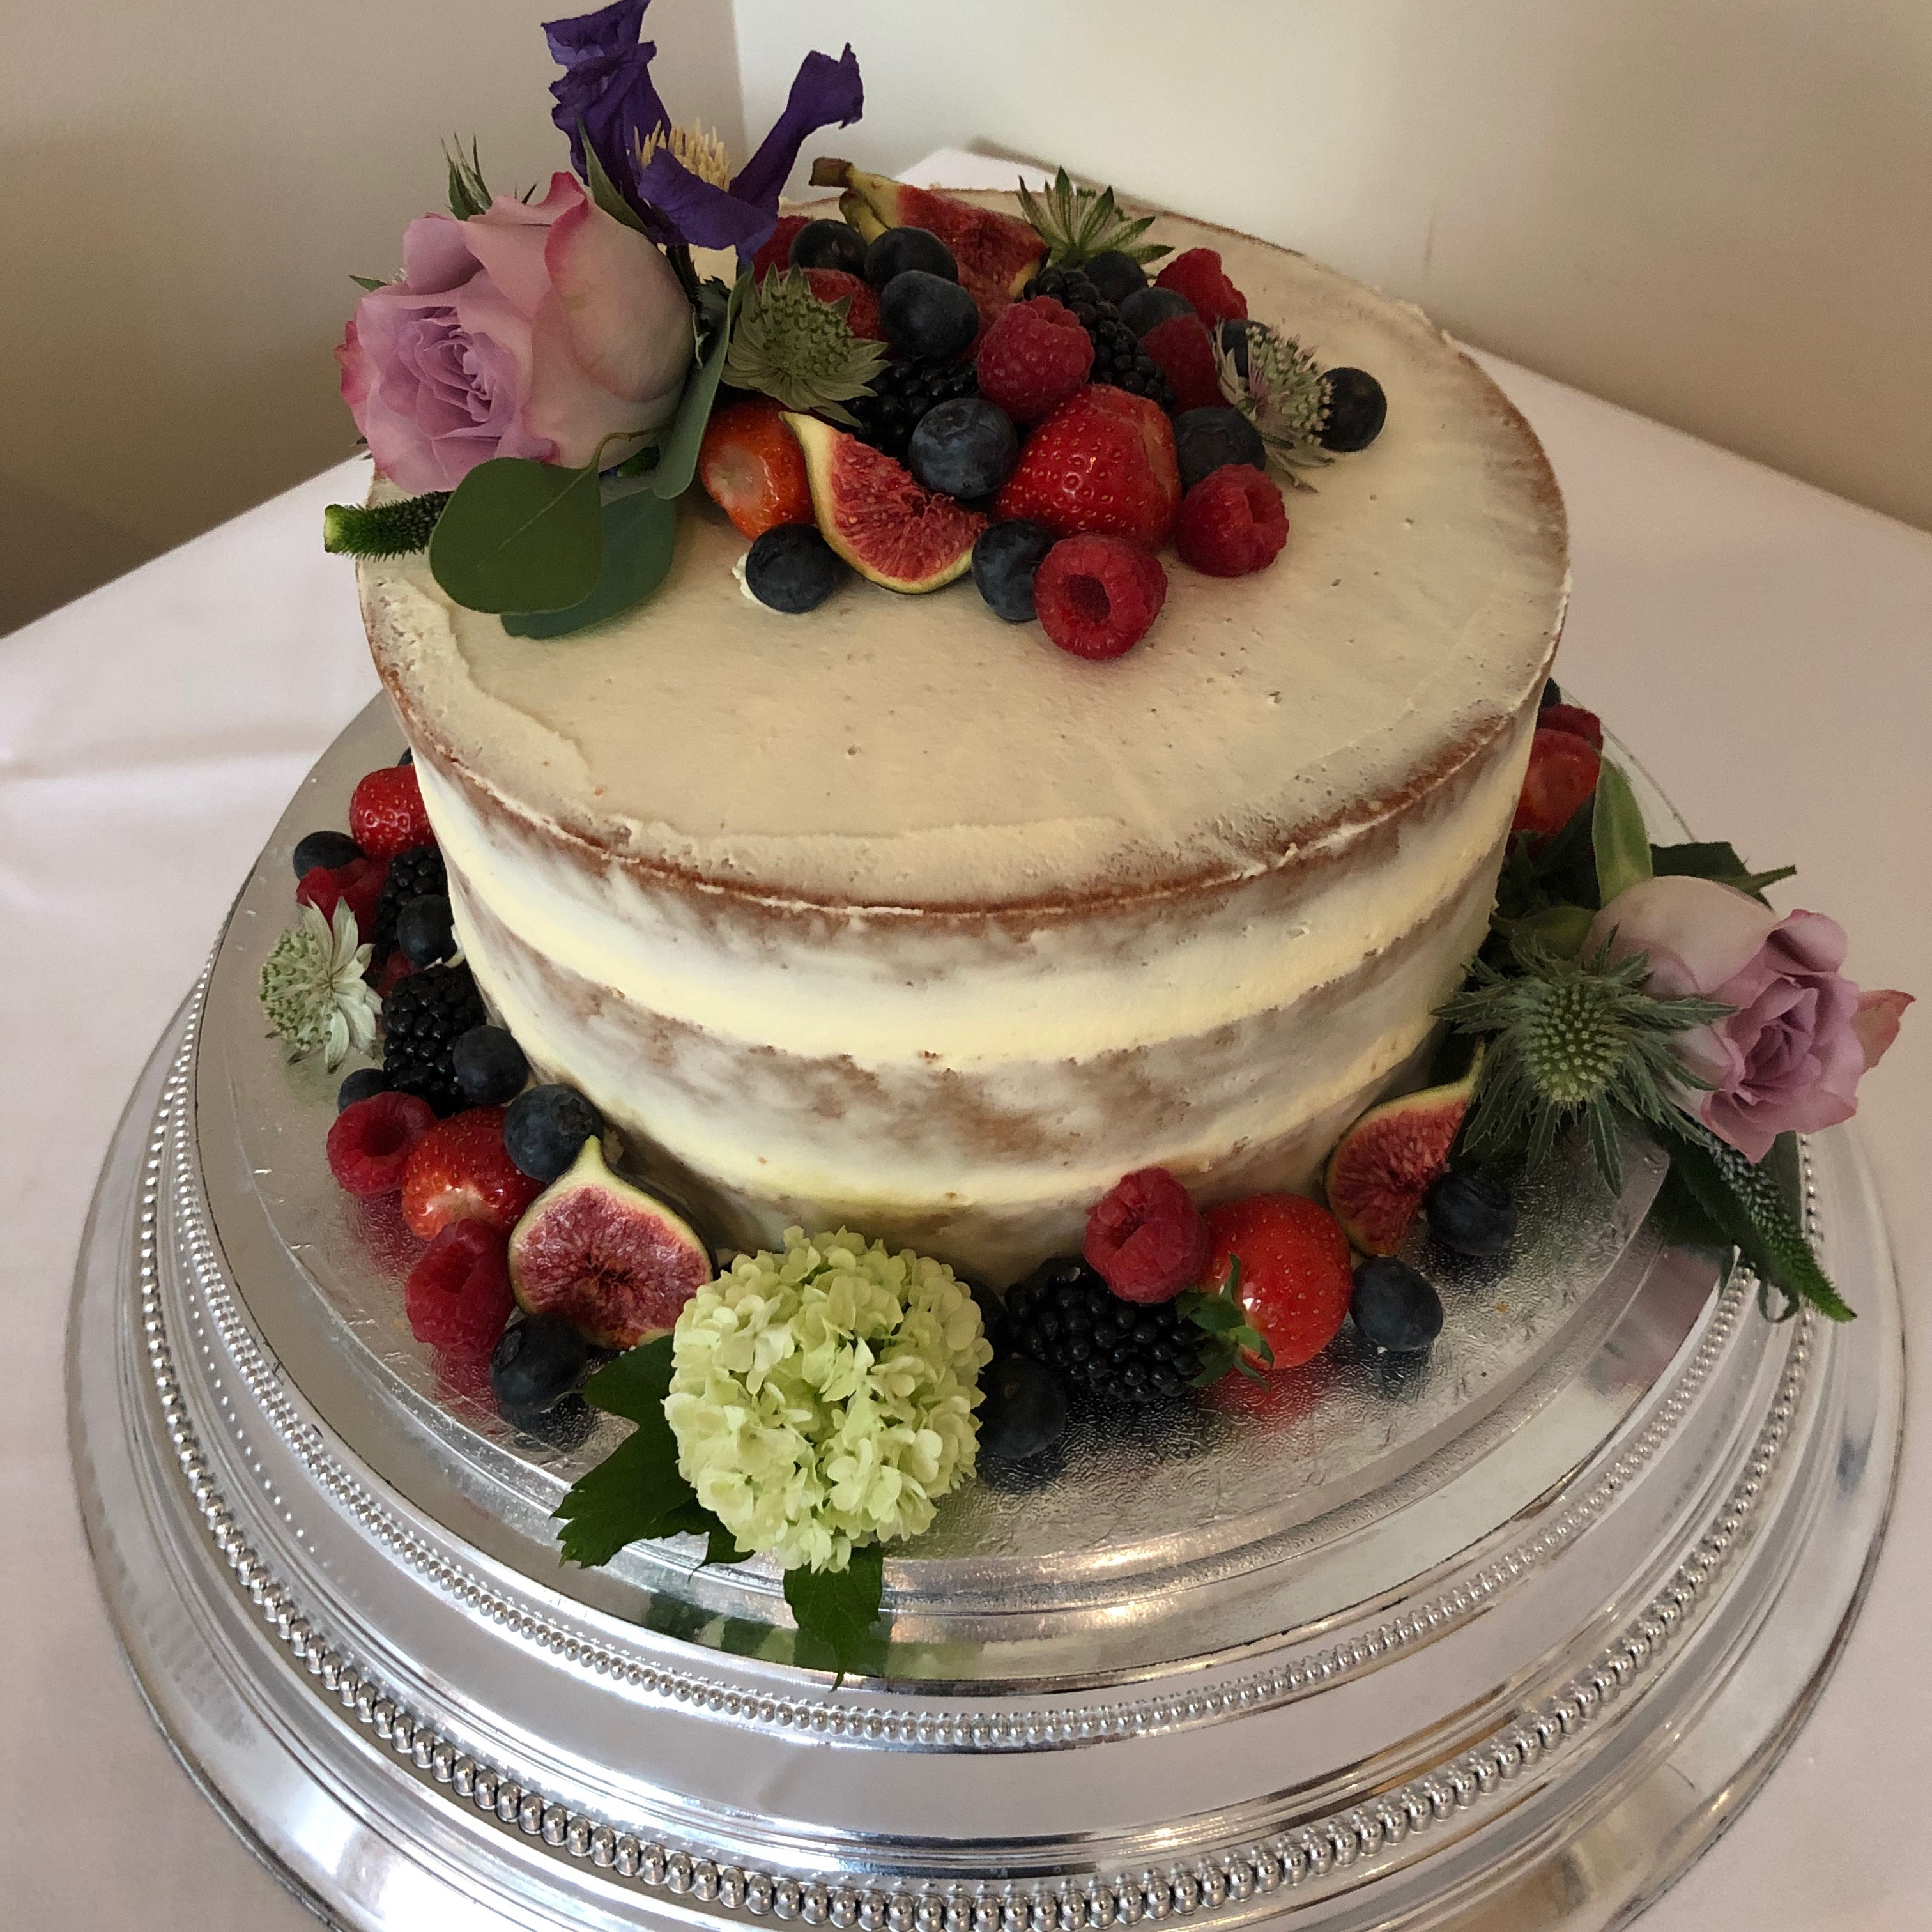 Semi-naked buttercream wedding cake with fresh fruit & flowers